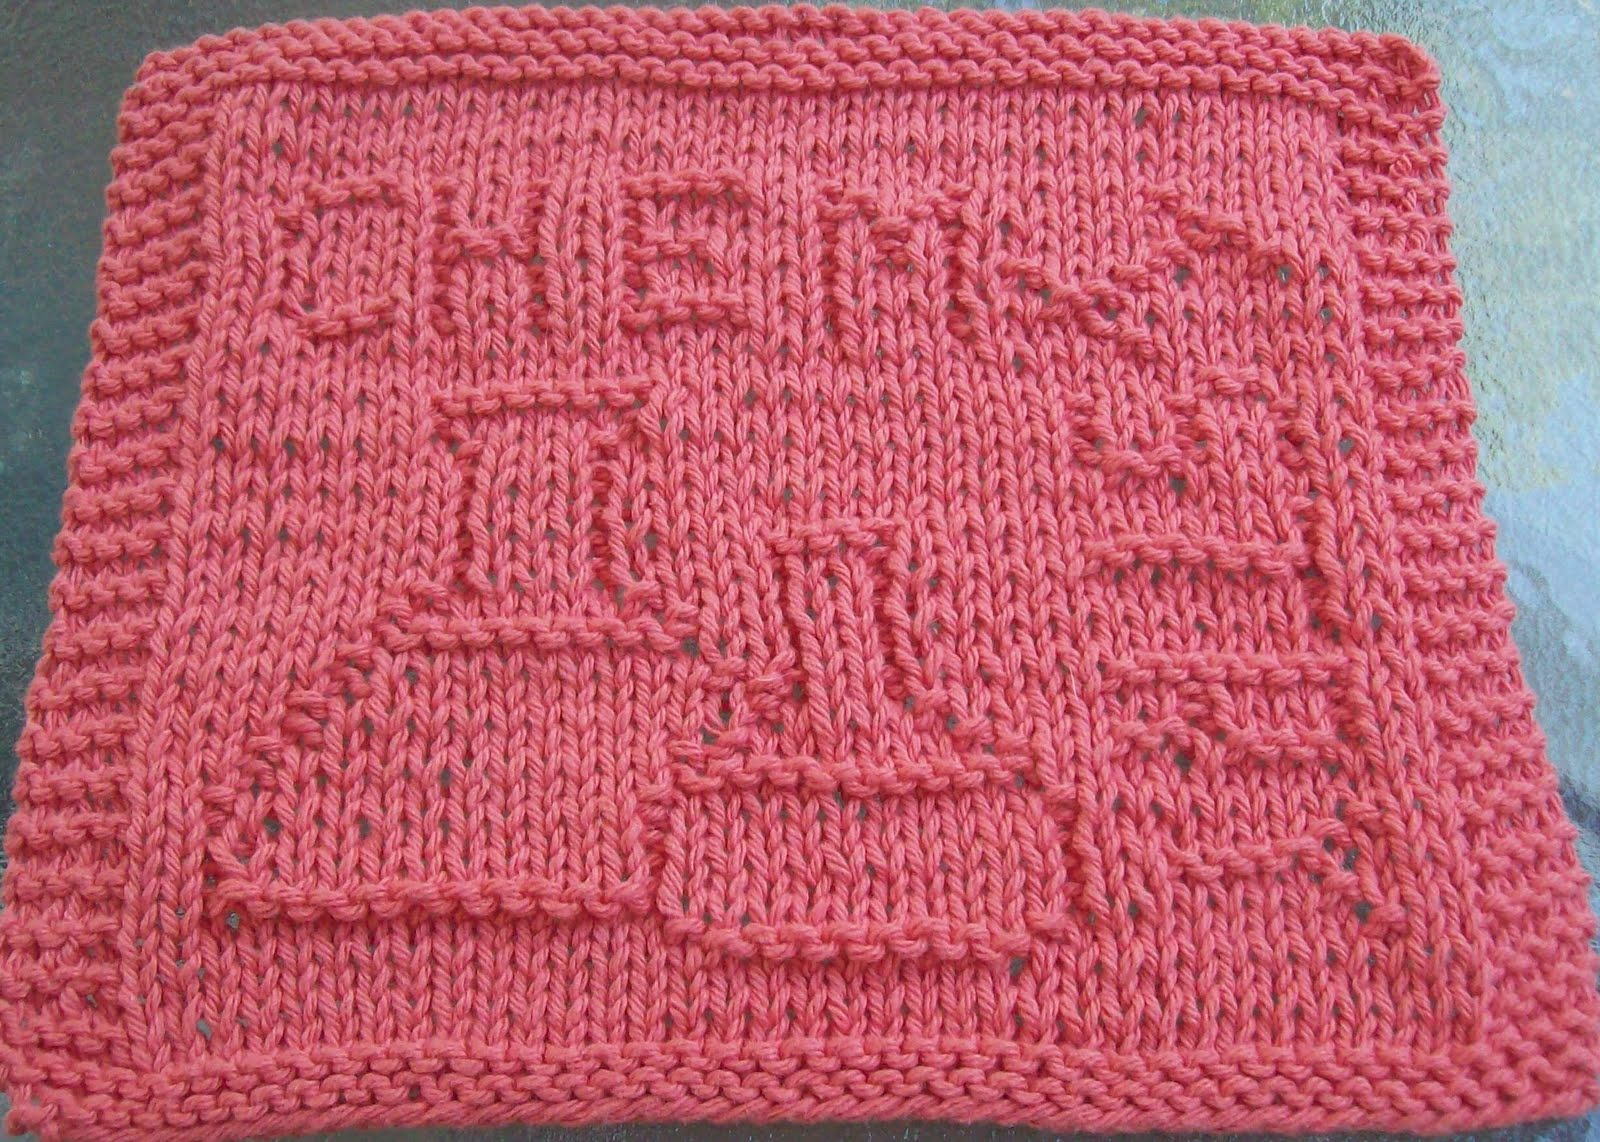 Dish Cloth Knitting Pattern : Knitted Dishcloth Patterns A Knitting Blog